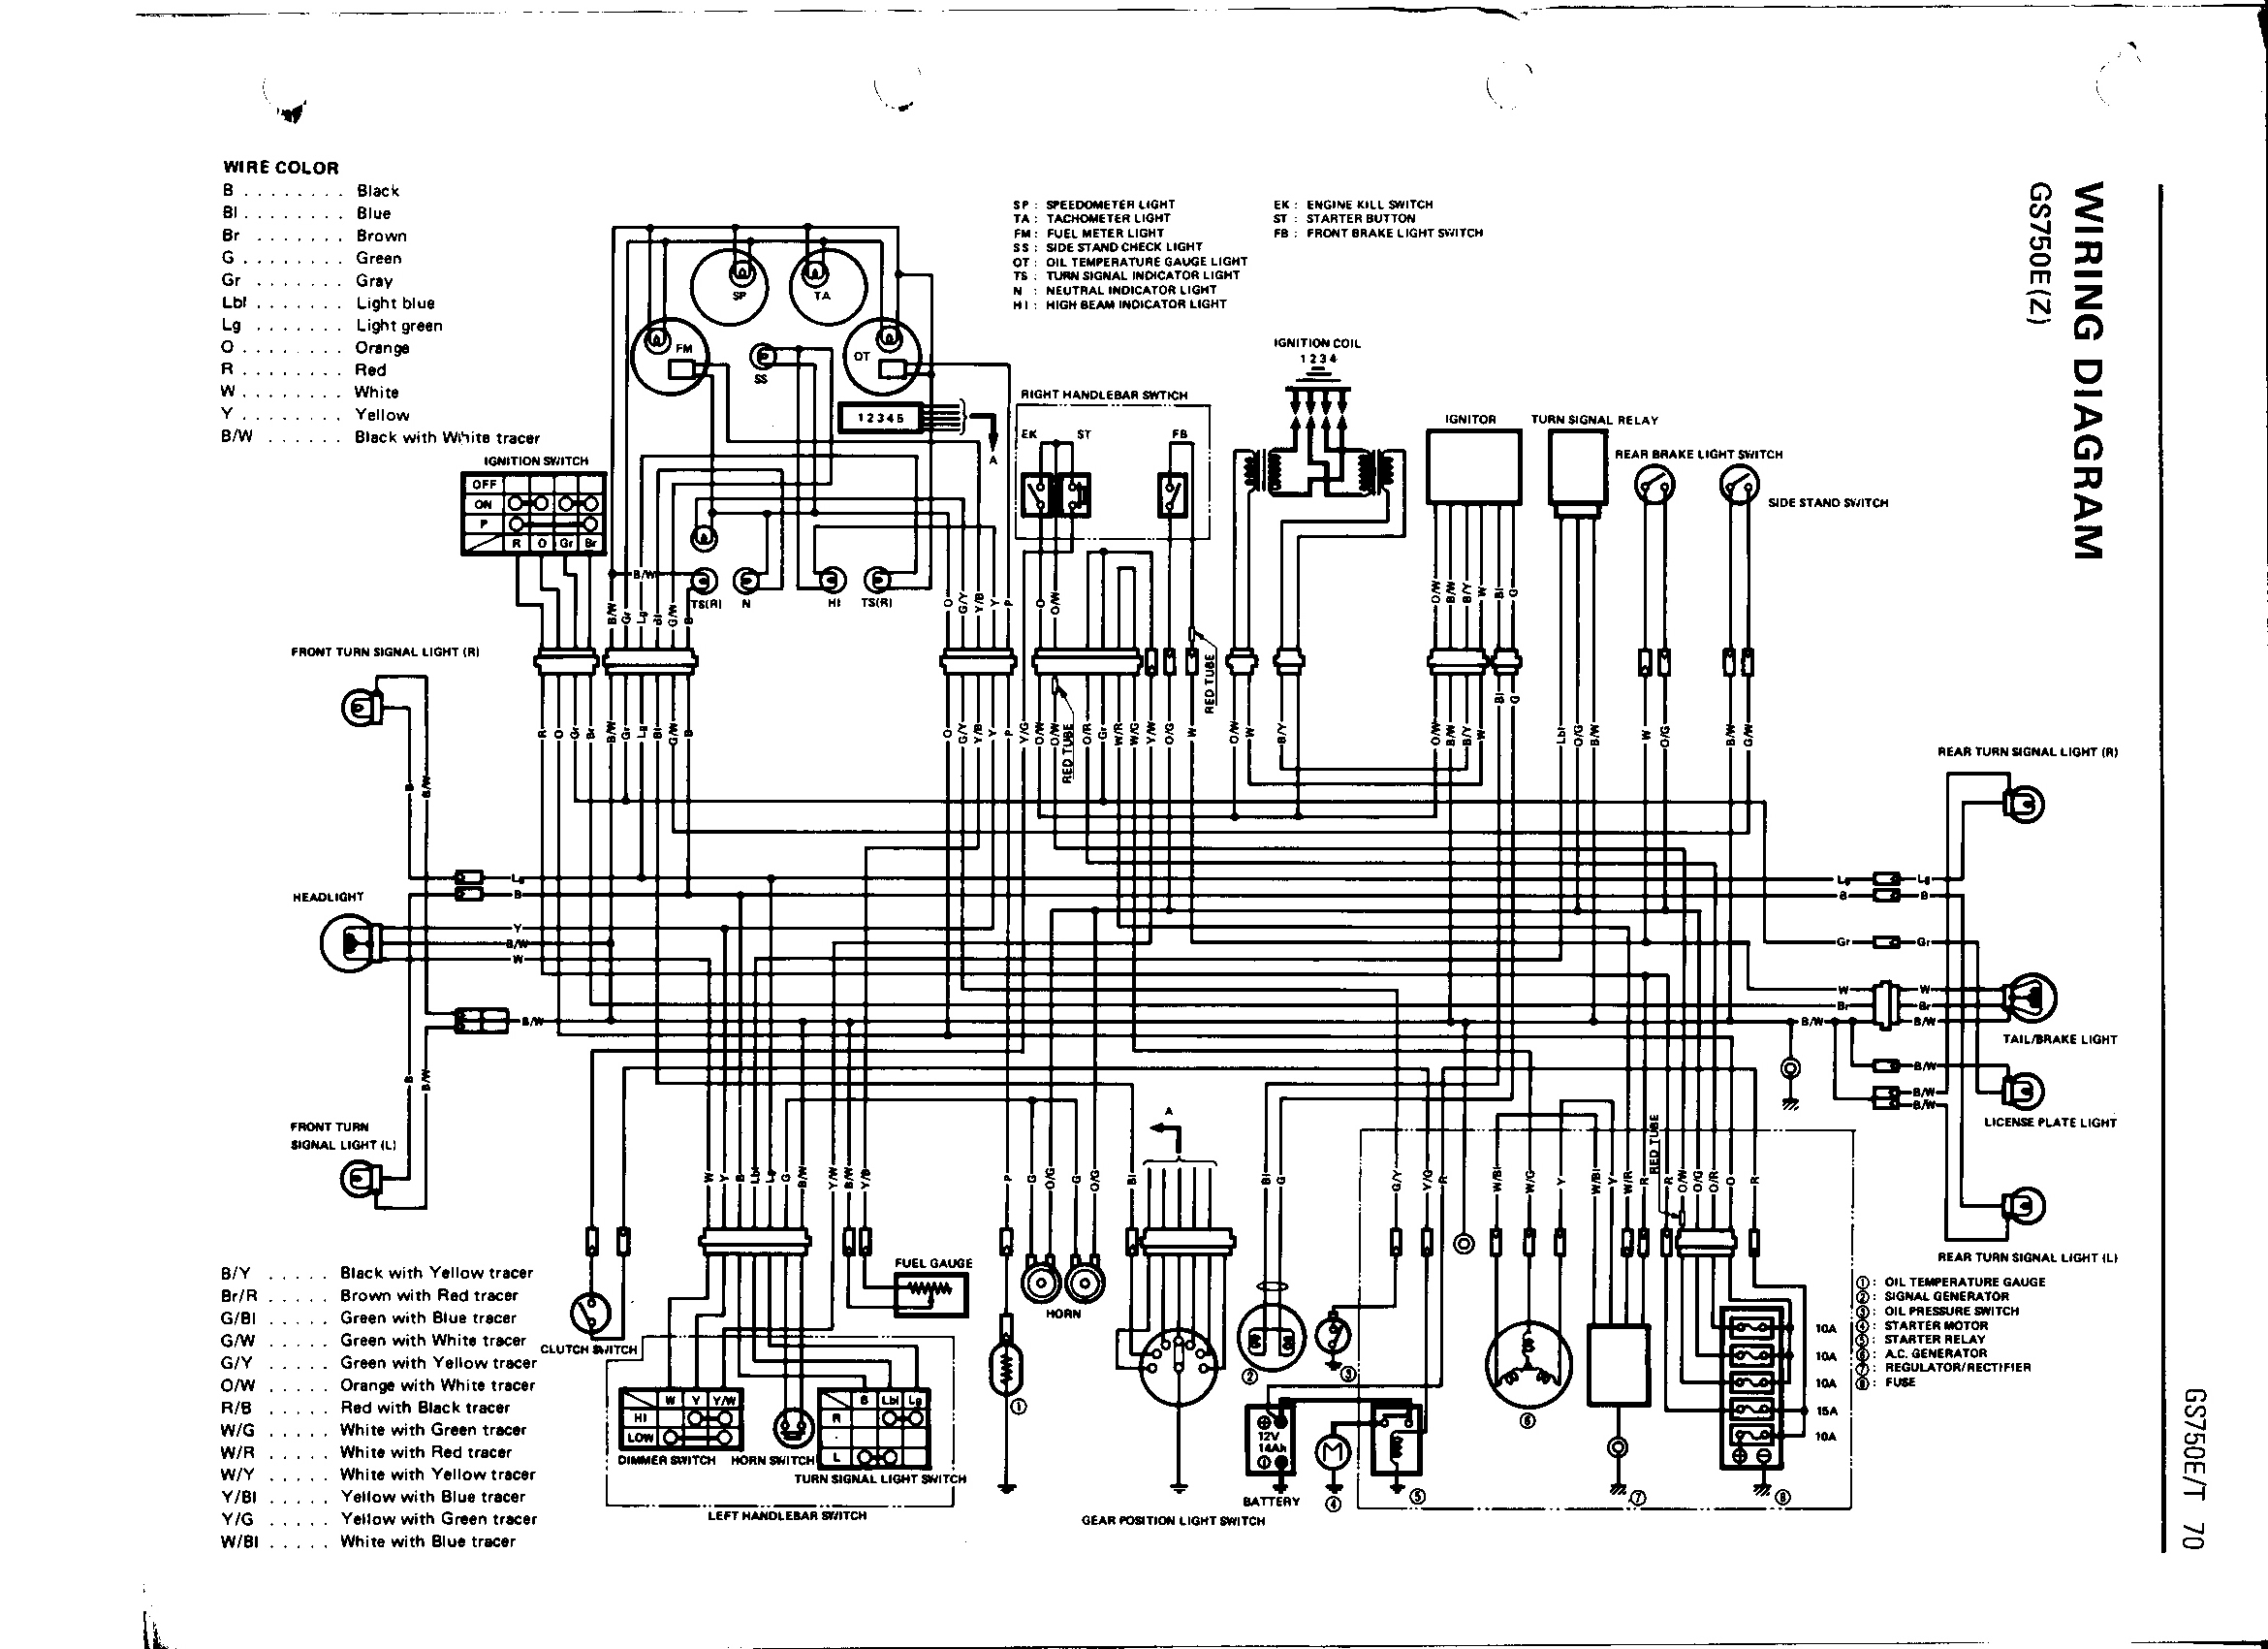 Diagram  2013 Suzuki Sx4 Wiring Diagram Full Version Hd